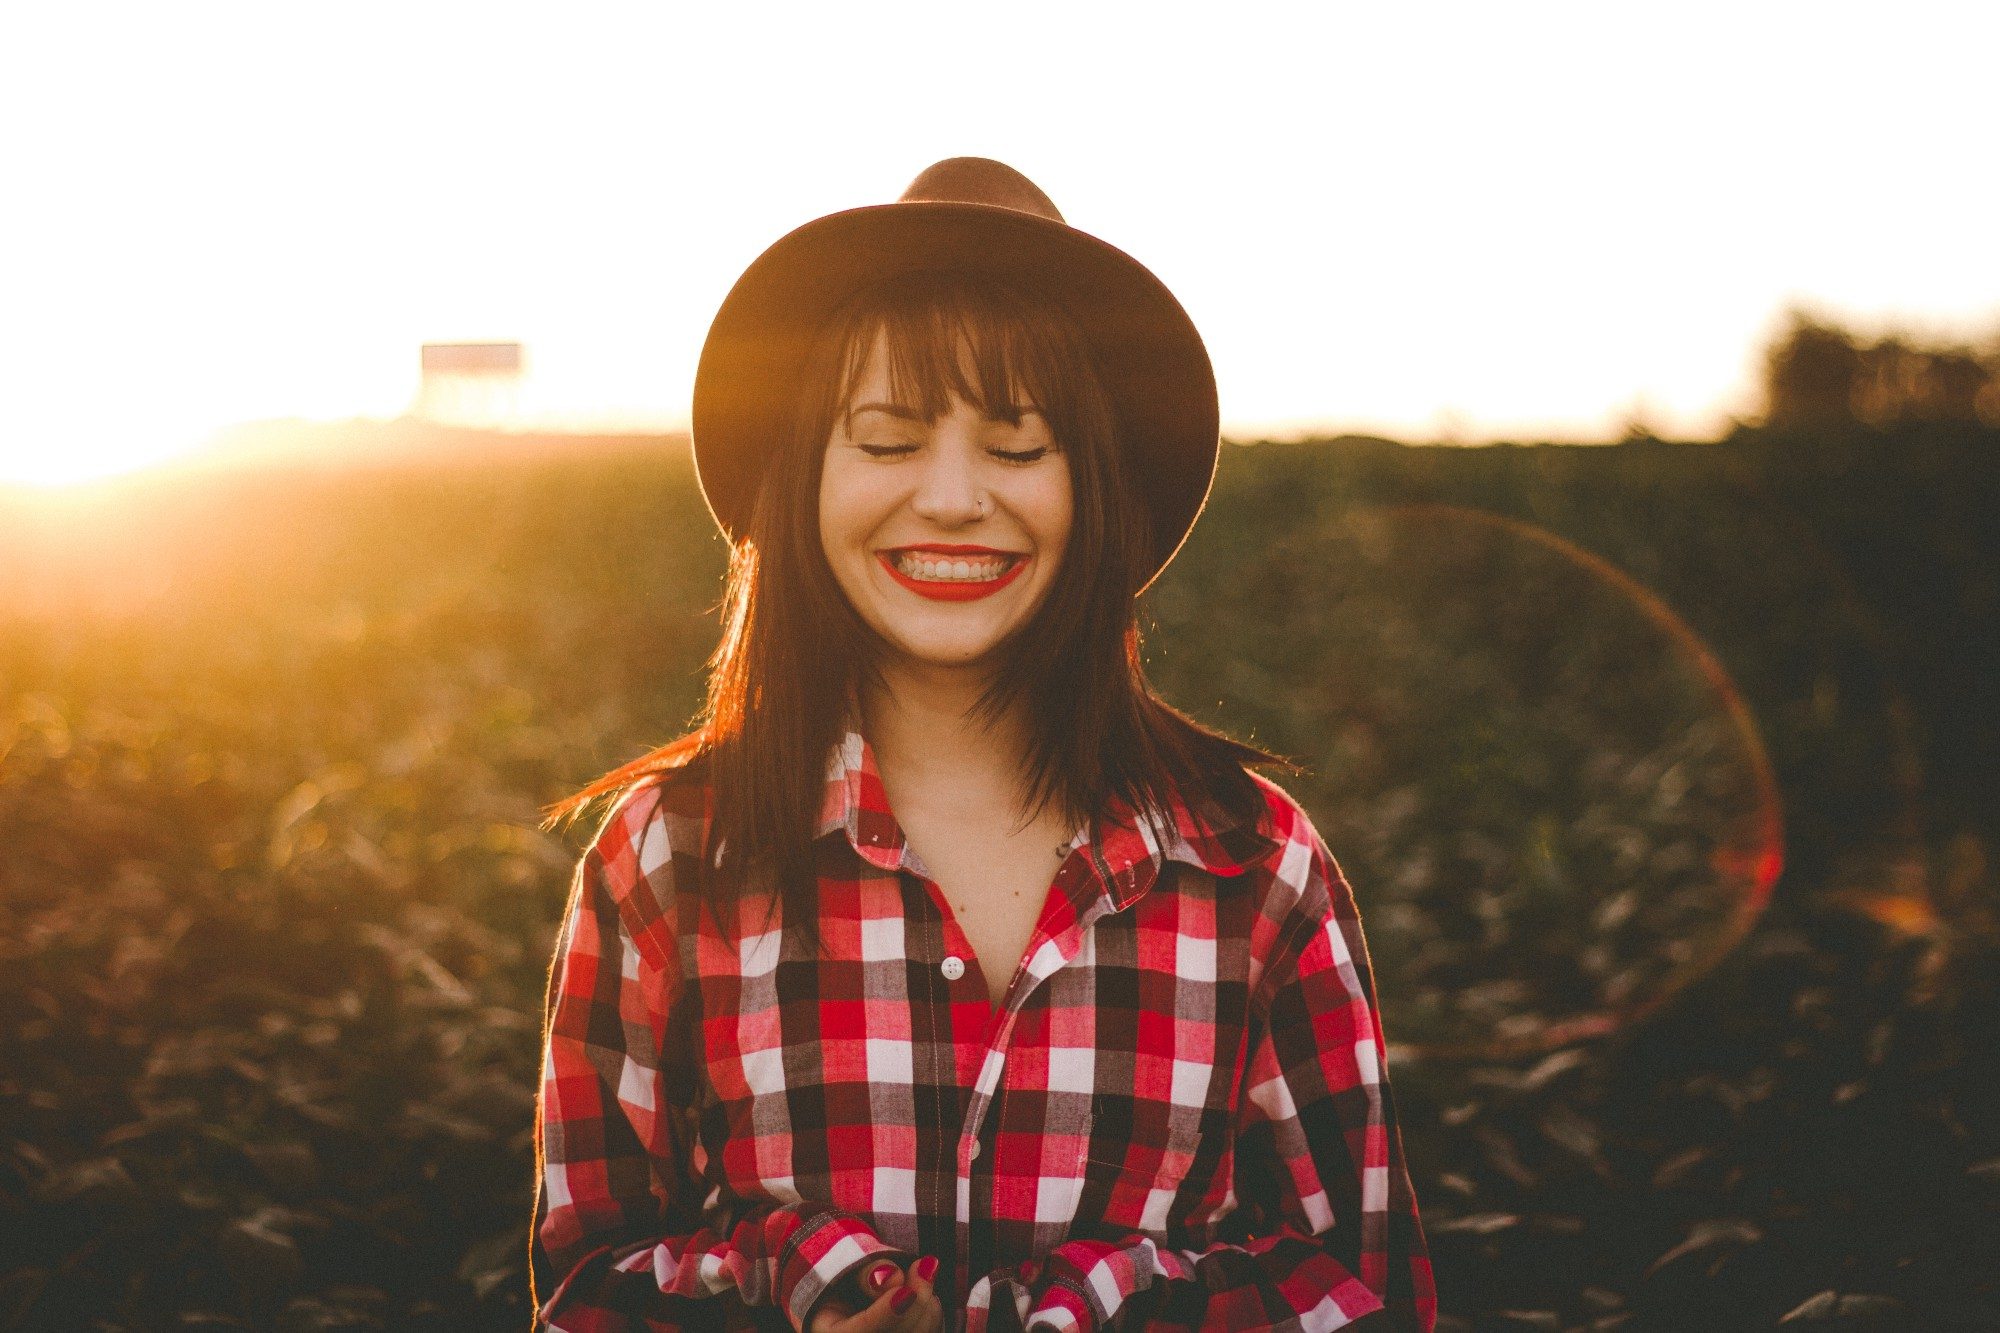 A woman standing in a field smiles broadly.